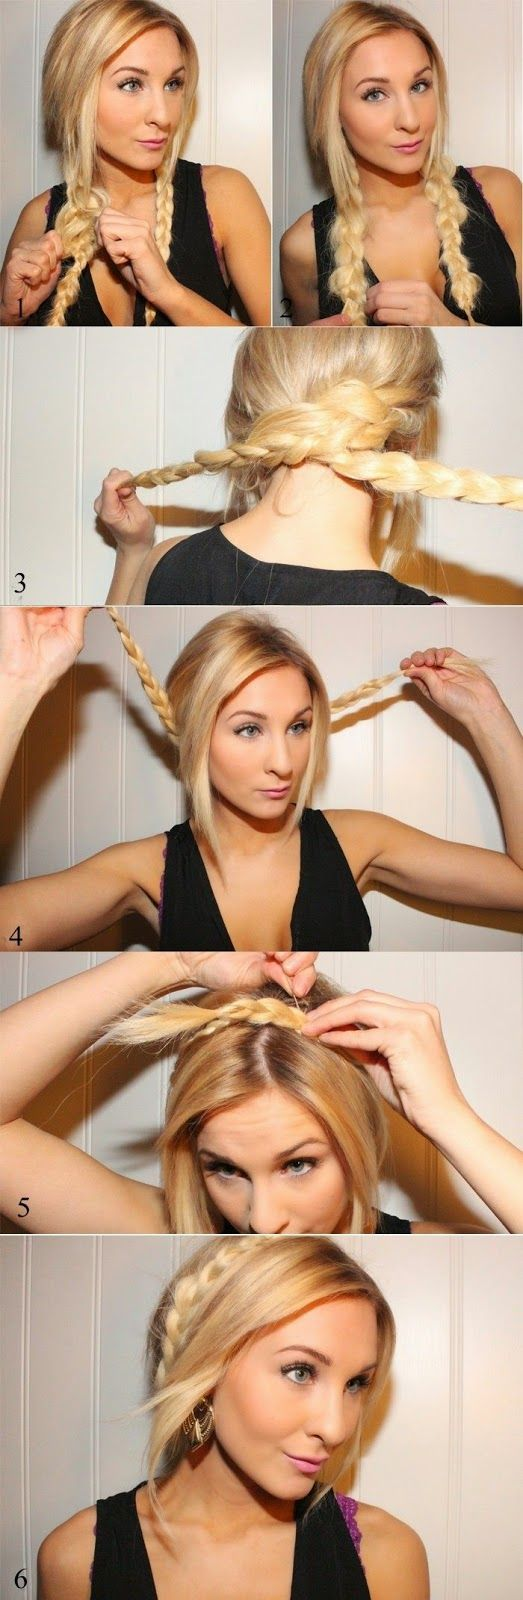 Hairstyles & Fashion: Top Best 5 Useful Hair Tutorials Ever